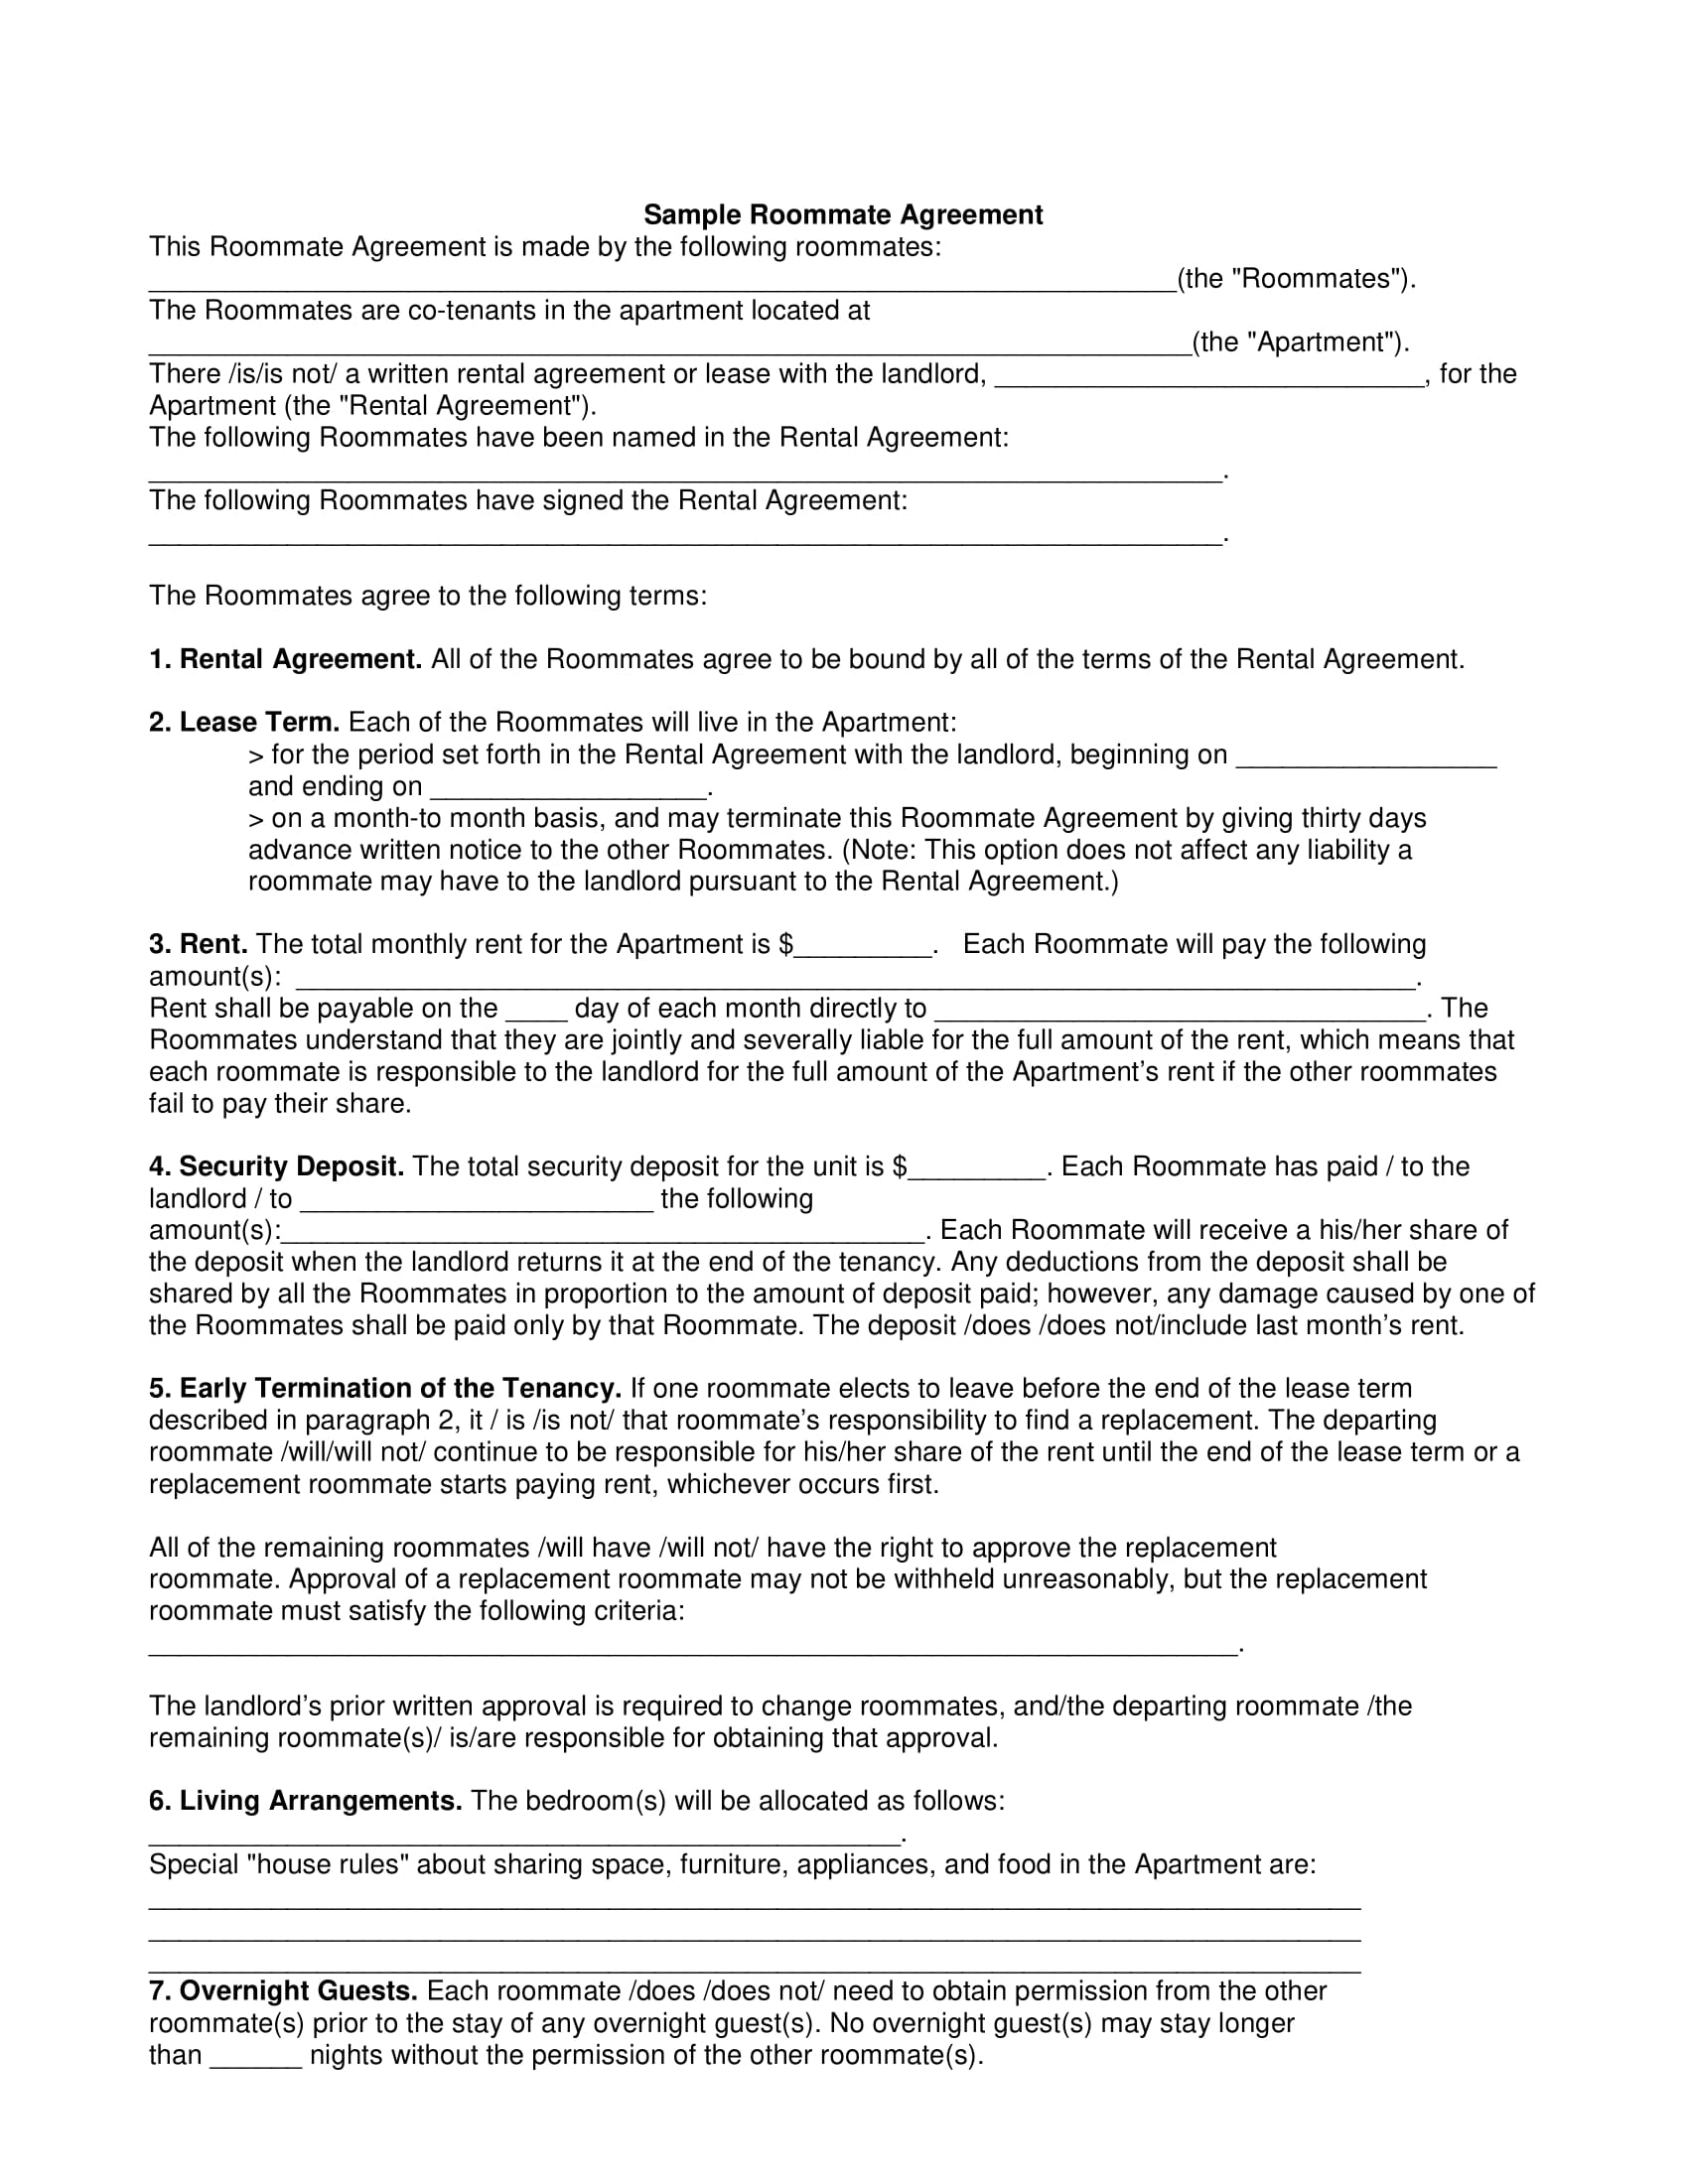 Agreement Example Selol Ink